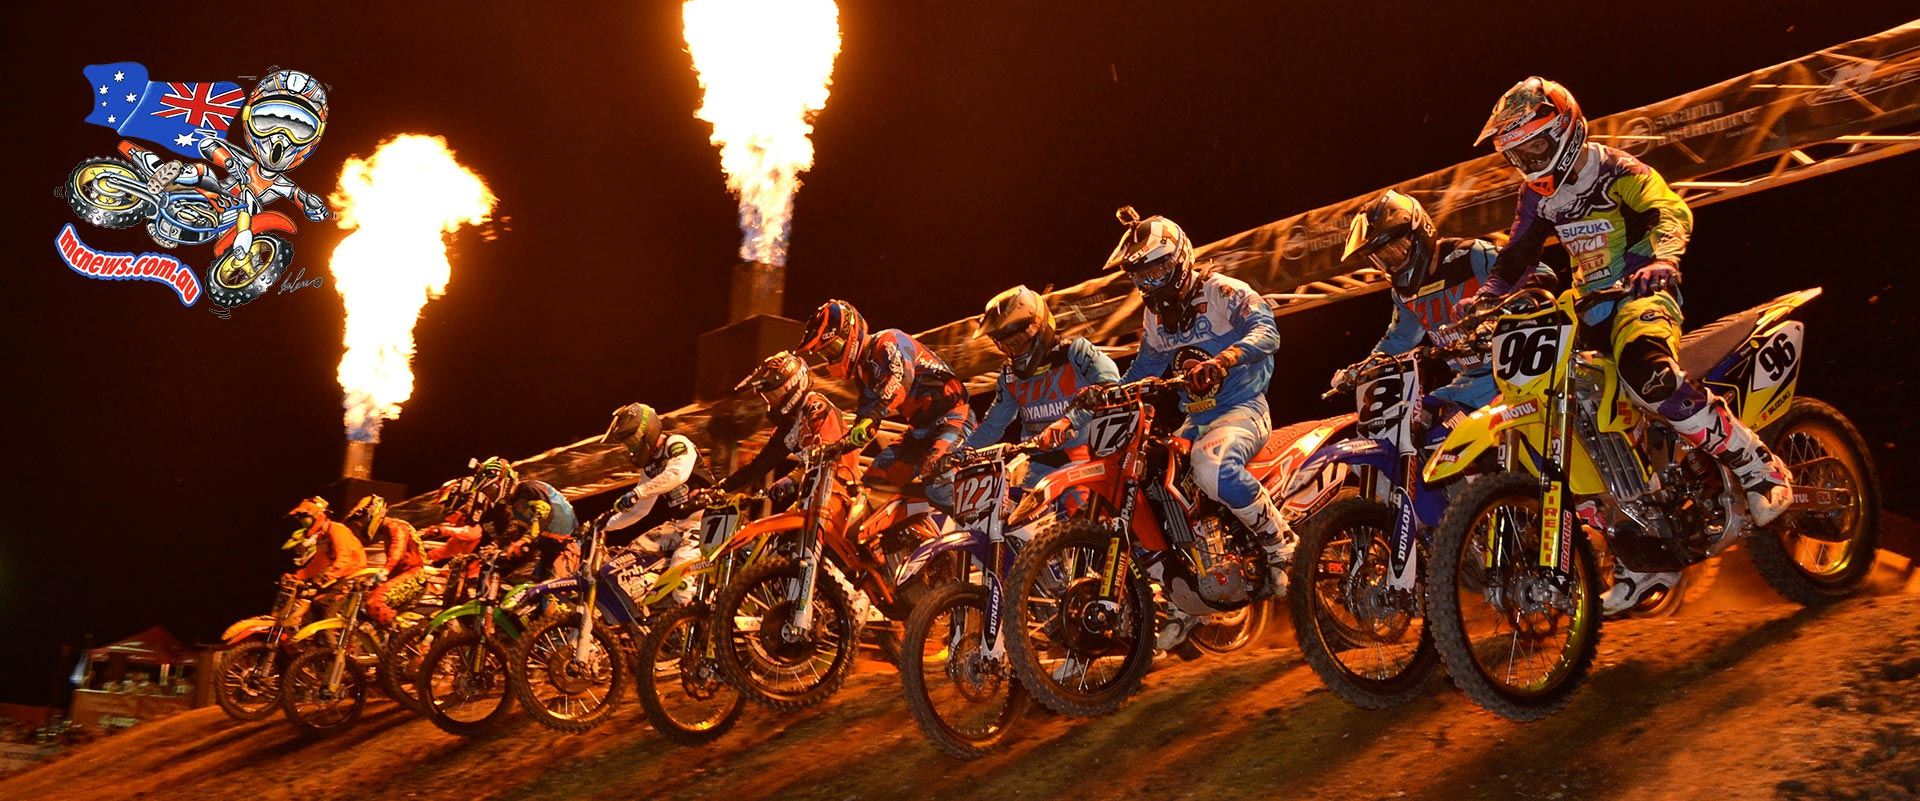 An elevated startline added to the excitement of another action-packed round of Australian Supercross Championship racing at Jimboomba X Stadium.